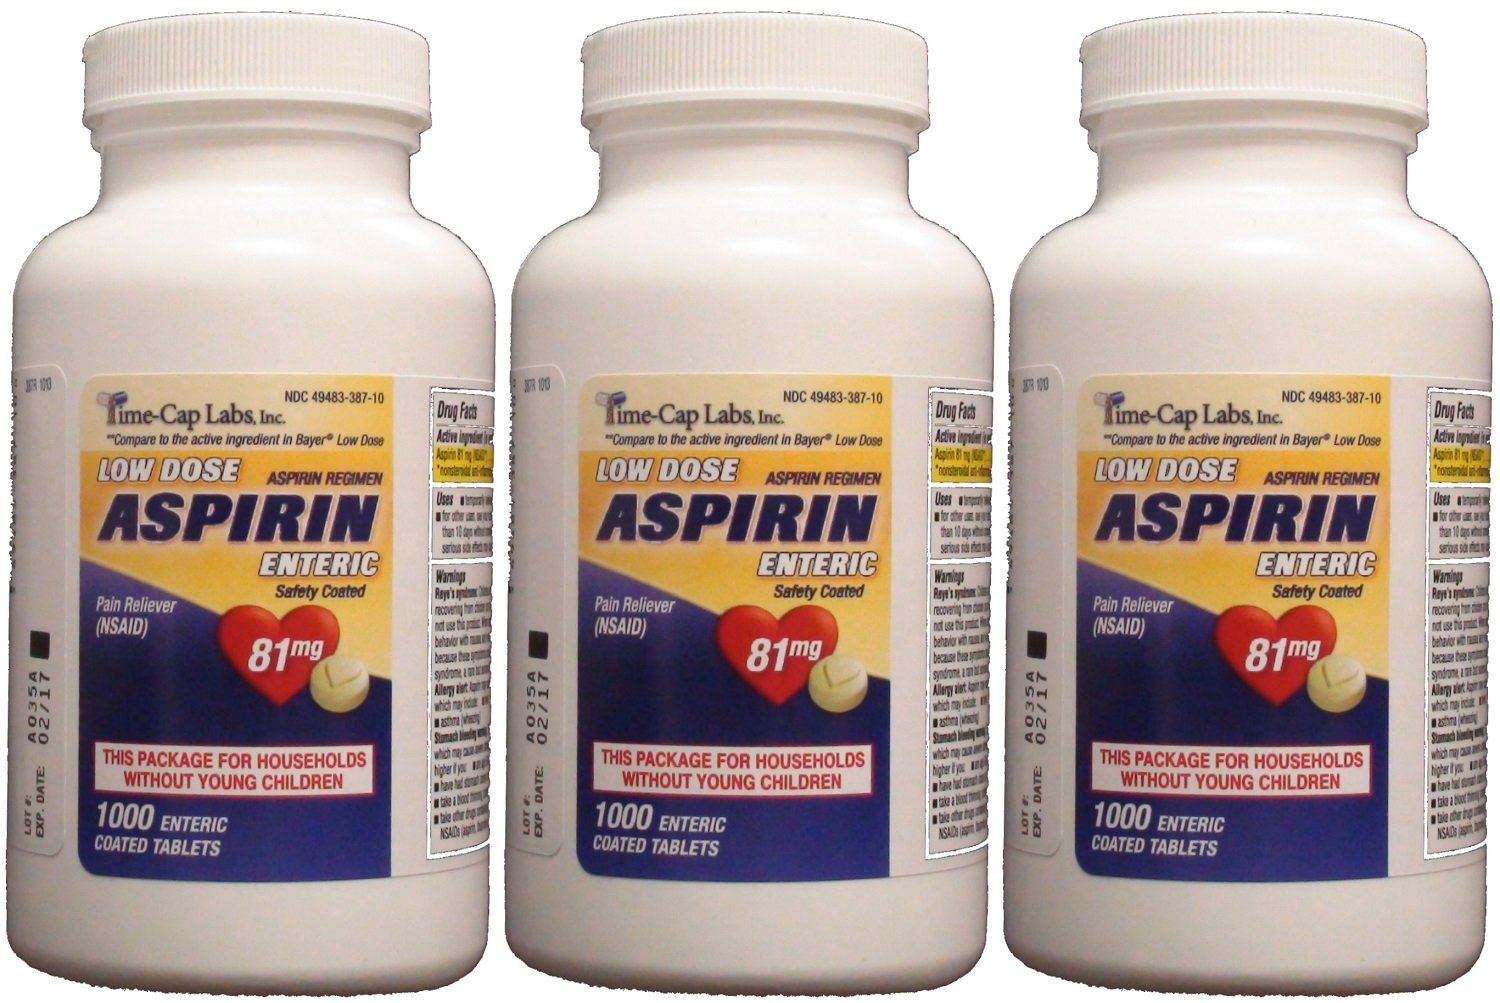 Aspirin Adult Low Dose Enteric Coated 81 mg Generic for Bayer Aspirin Low Dose 1000 Tablets Per Bottle Pack of 3 by Time Cap Labs